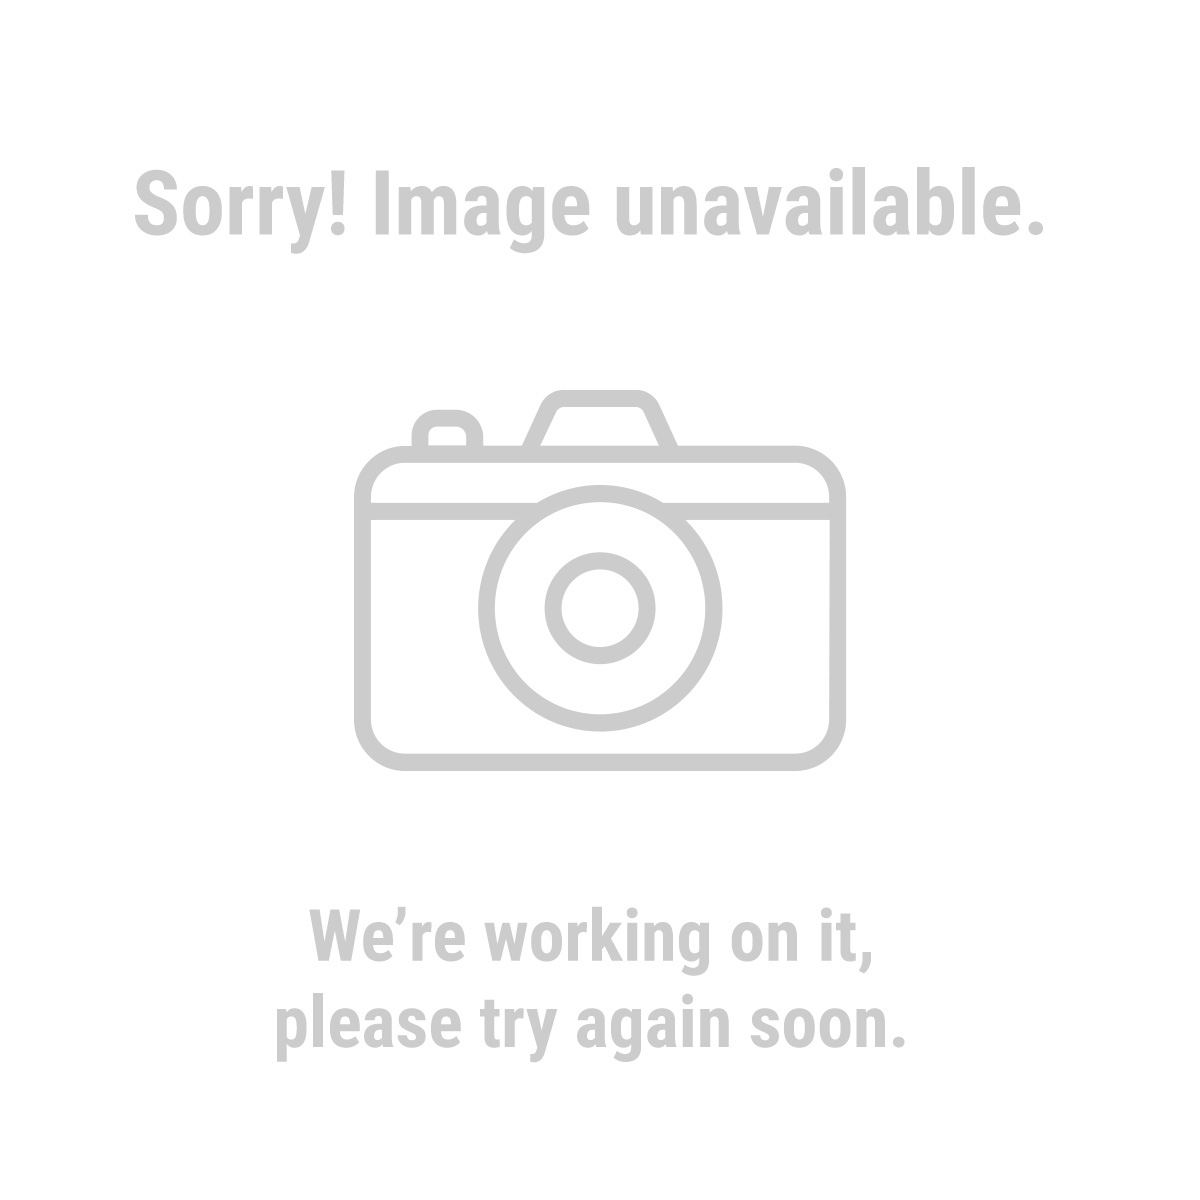 Cen-Tech 66526 Four-Way Trailer Light Tester